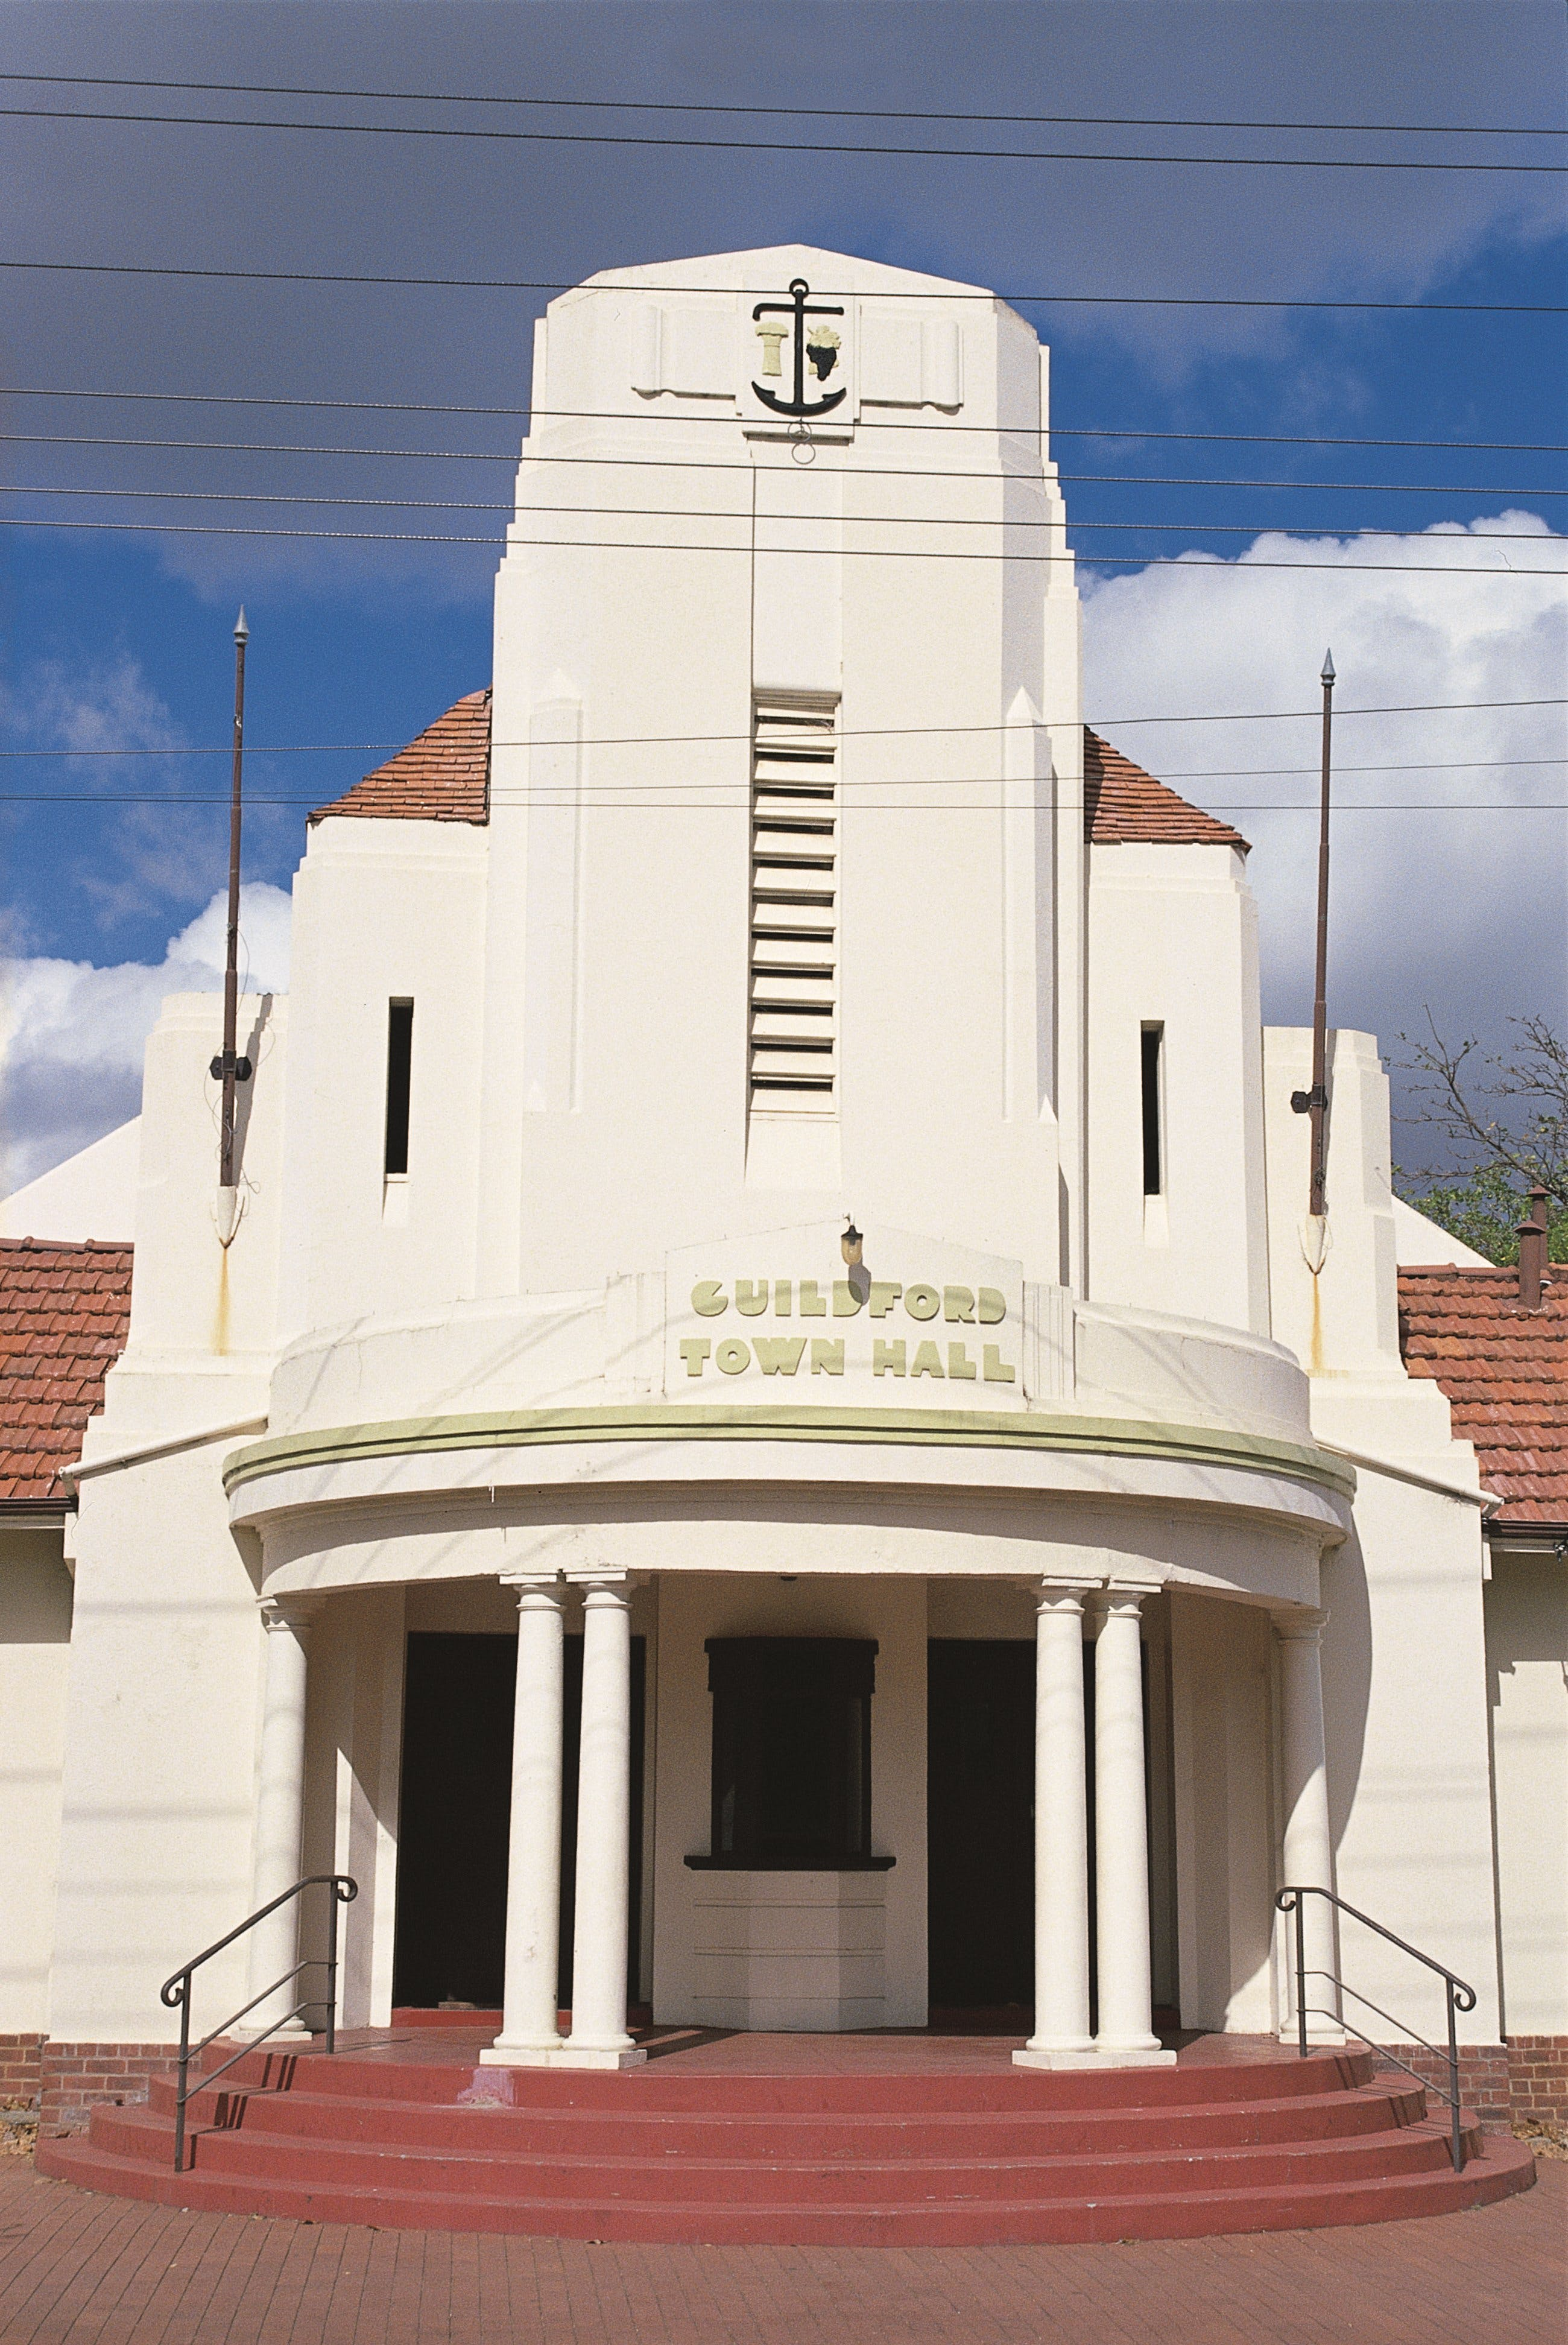 Guildford Town Hall, Guildford, Western Australia